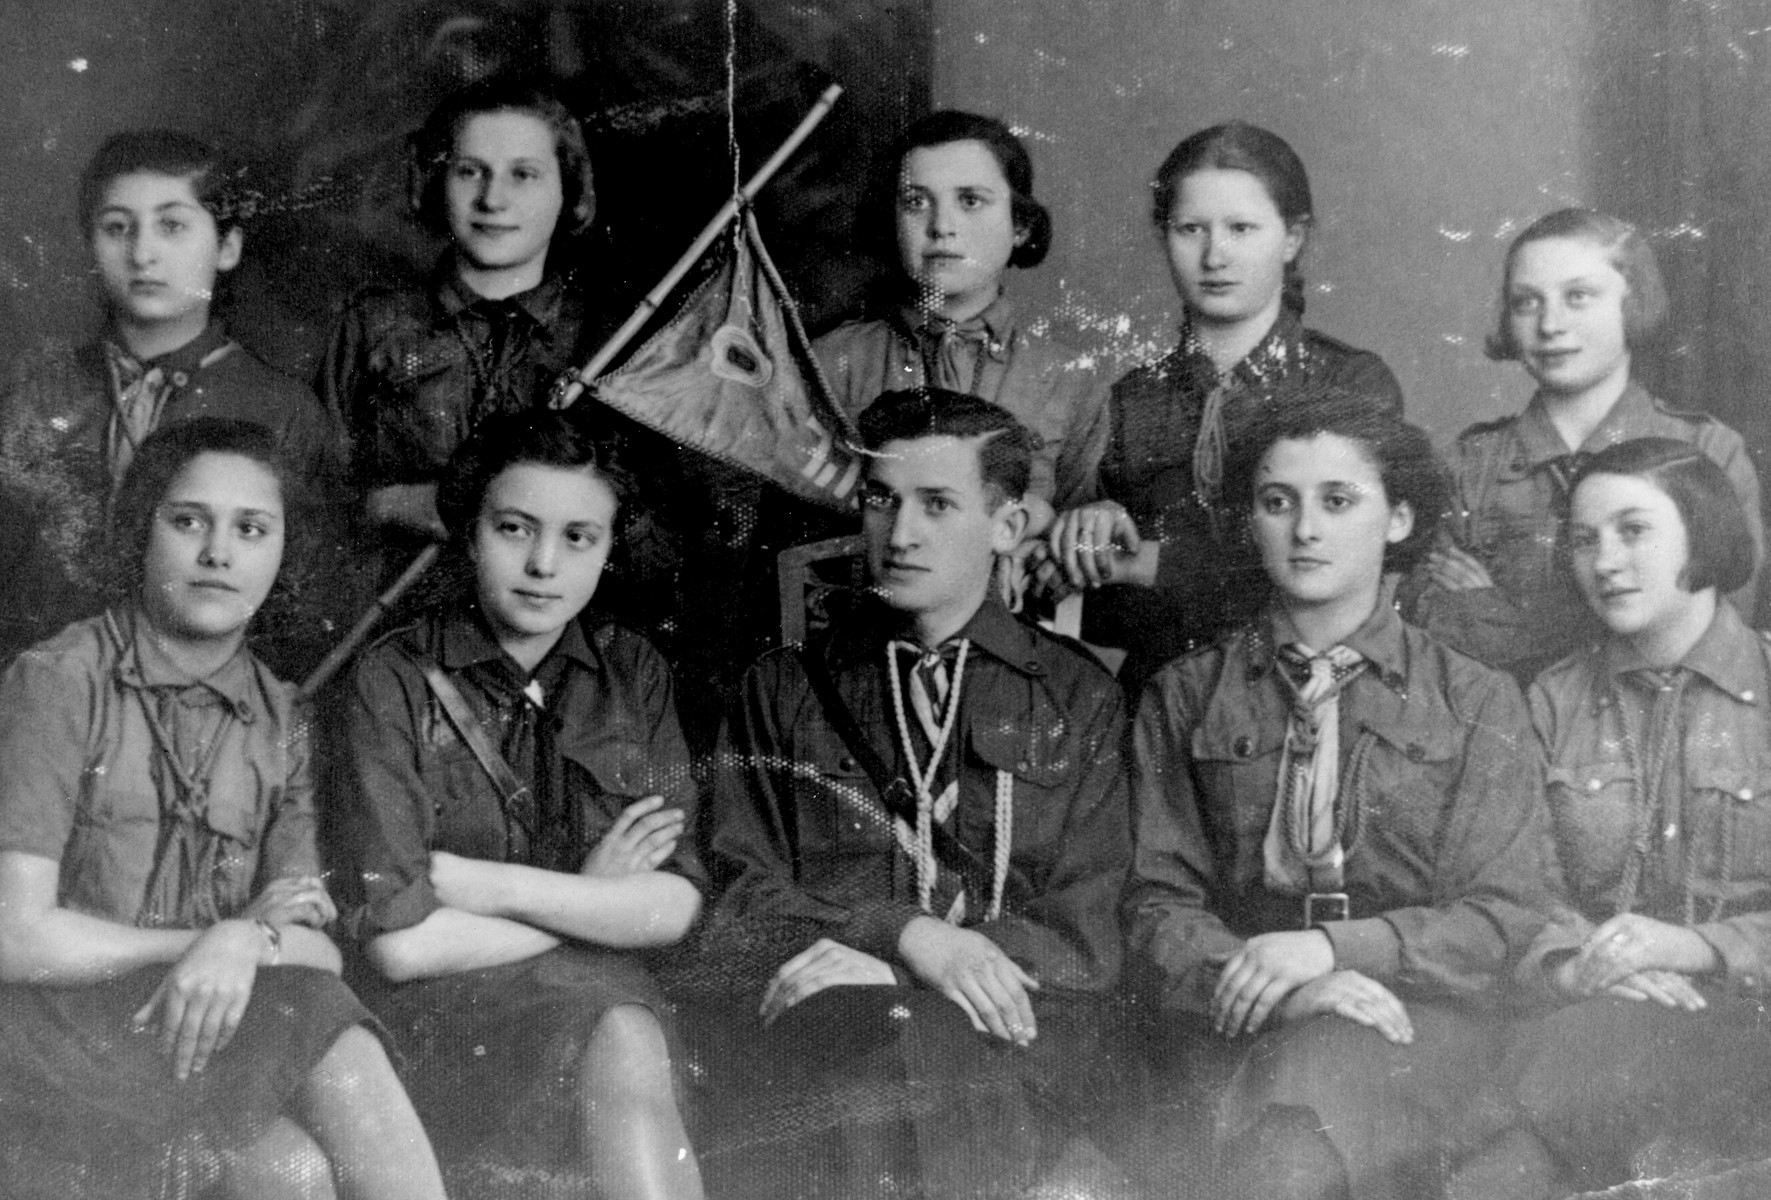 Group portrait of members of the Betar revisionist Zionist youth movement in Bedzin, Poland.